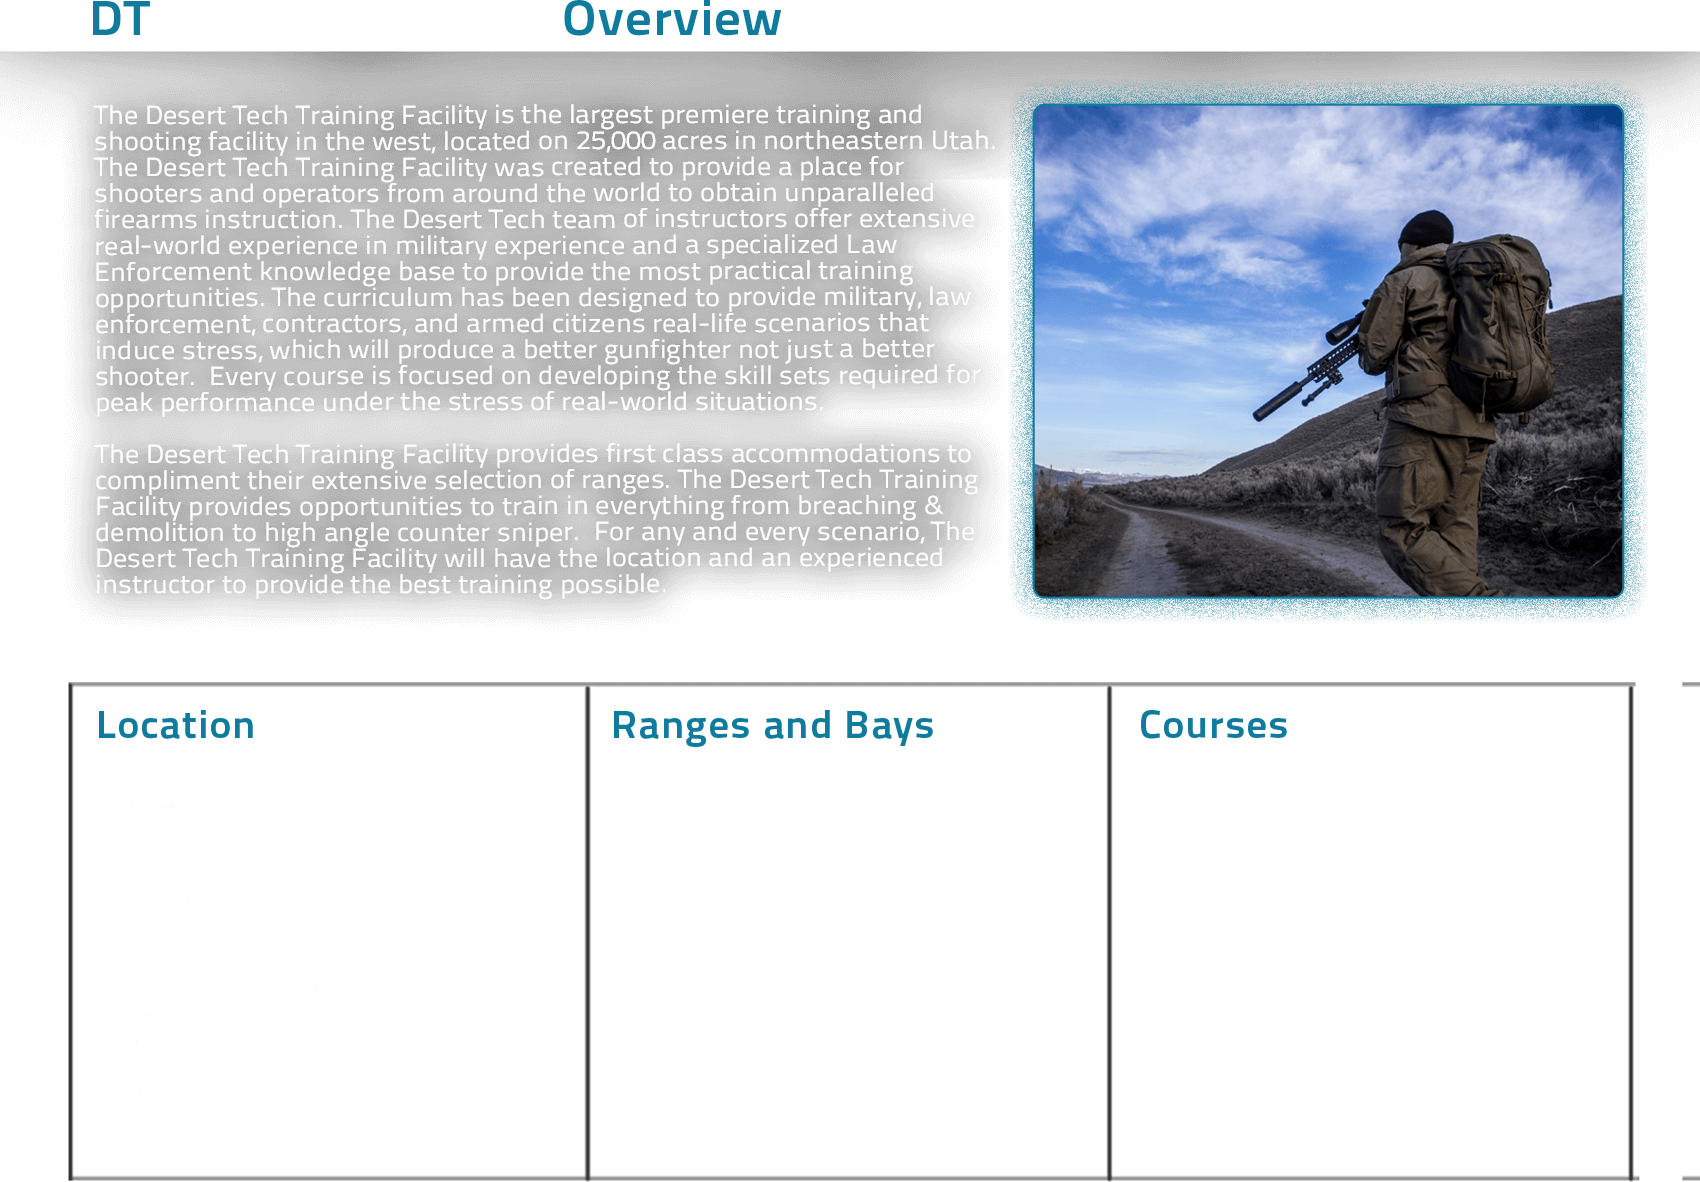 Desert Tech Training Overview Graphic